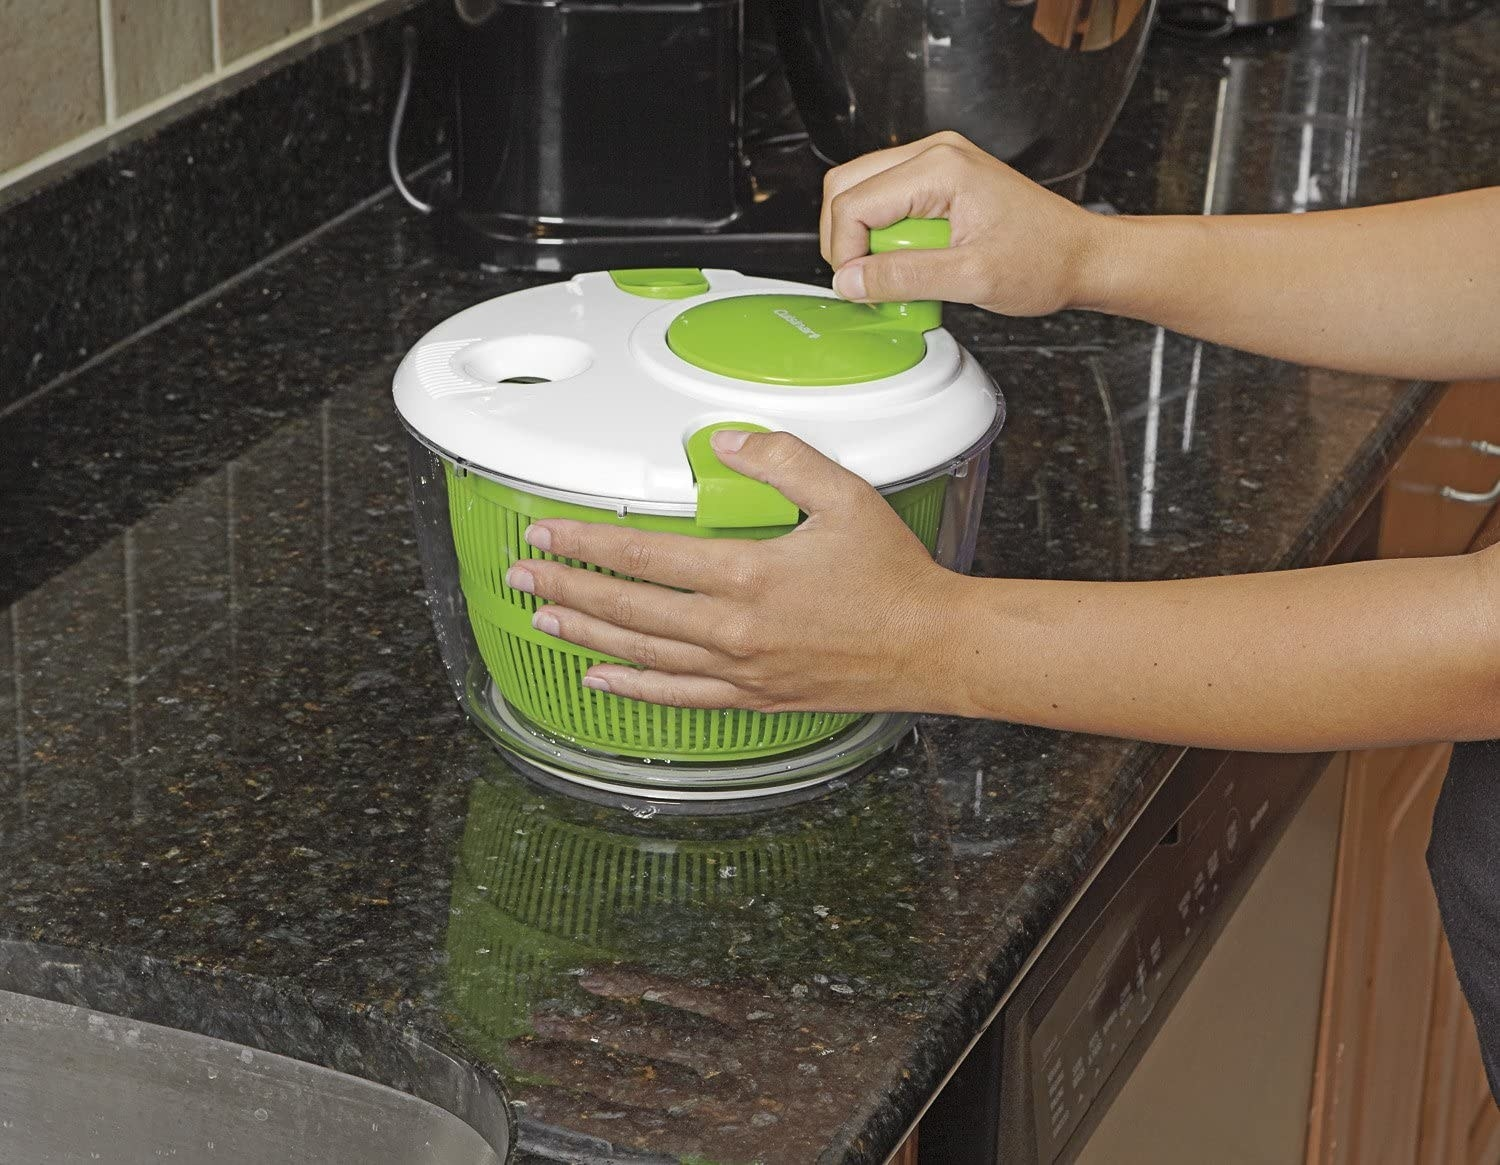 A person cranks a salad spinner on a kitchen counter